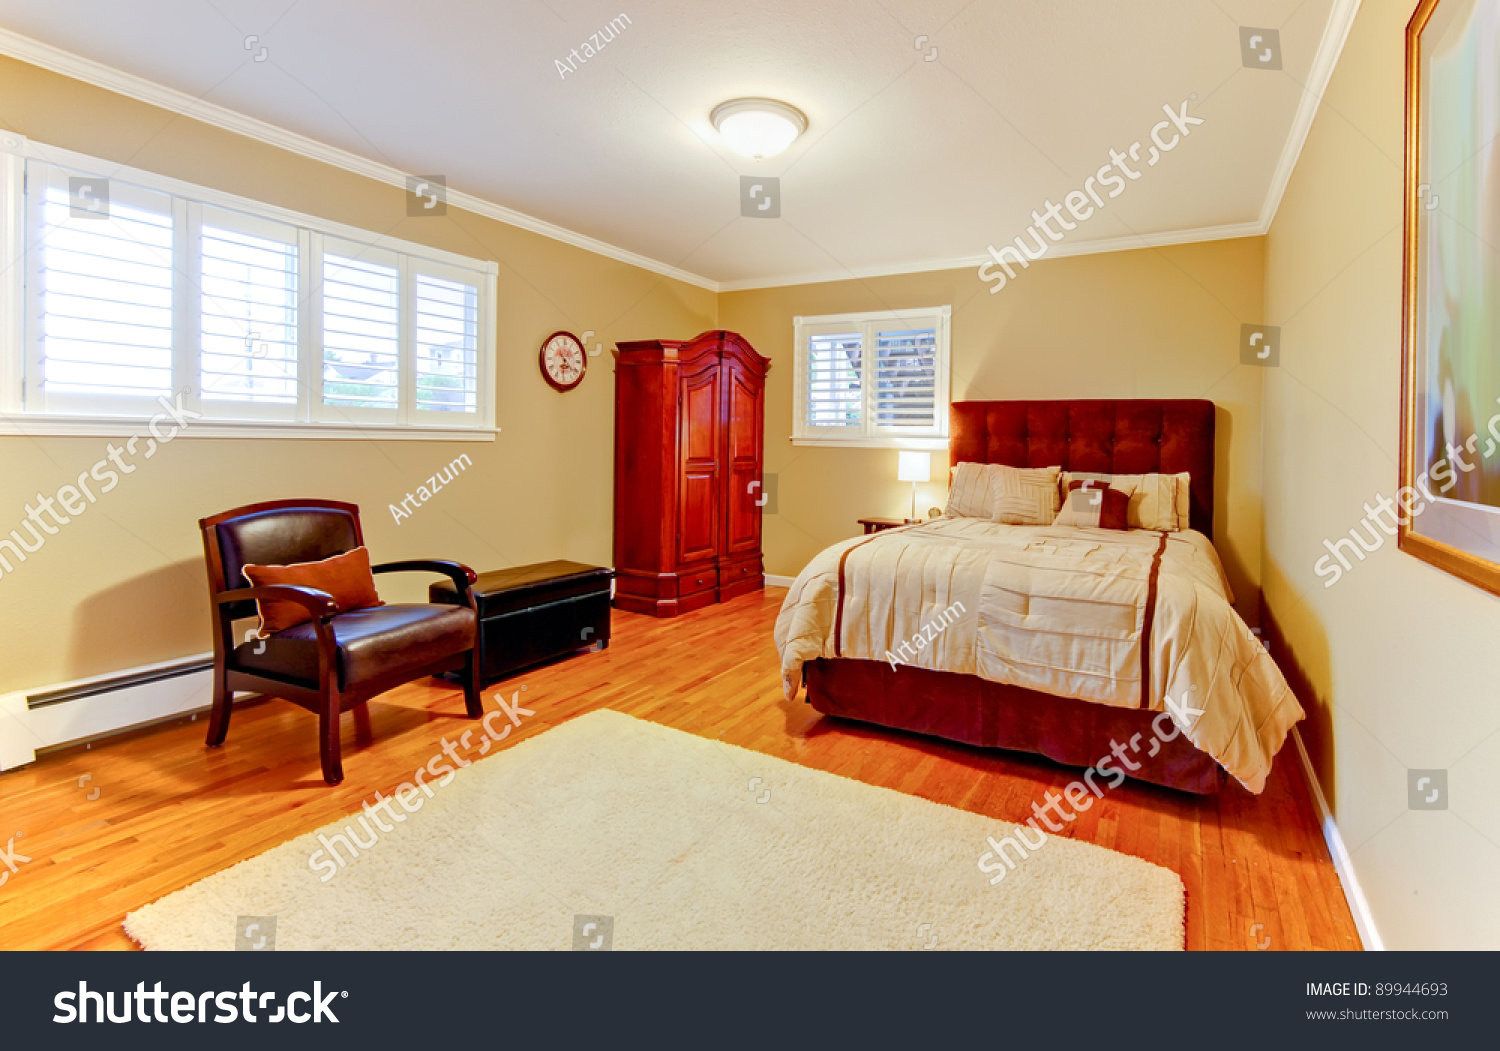 Large nice yellow beige bedroom design interior stock for Yellow bedroom interior design